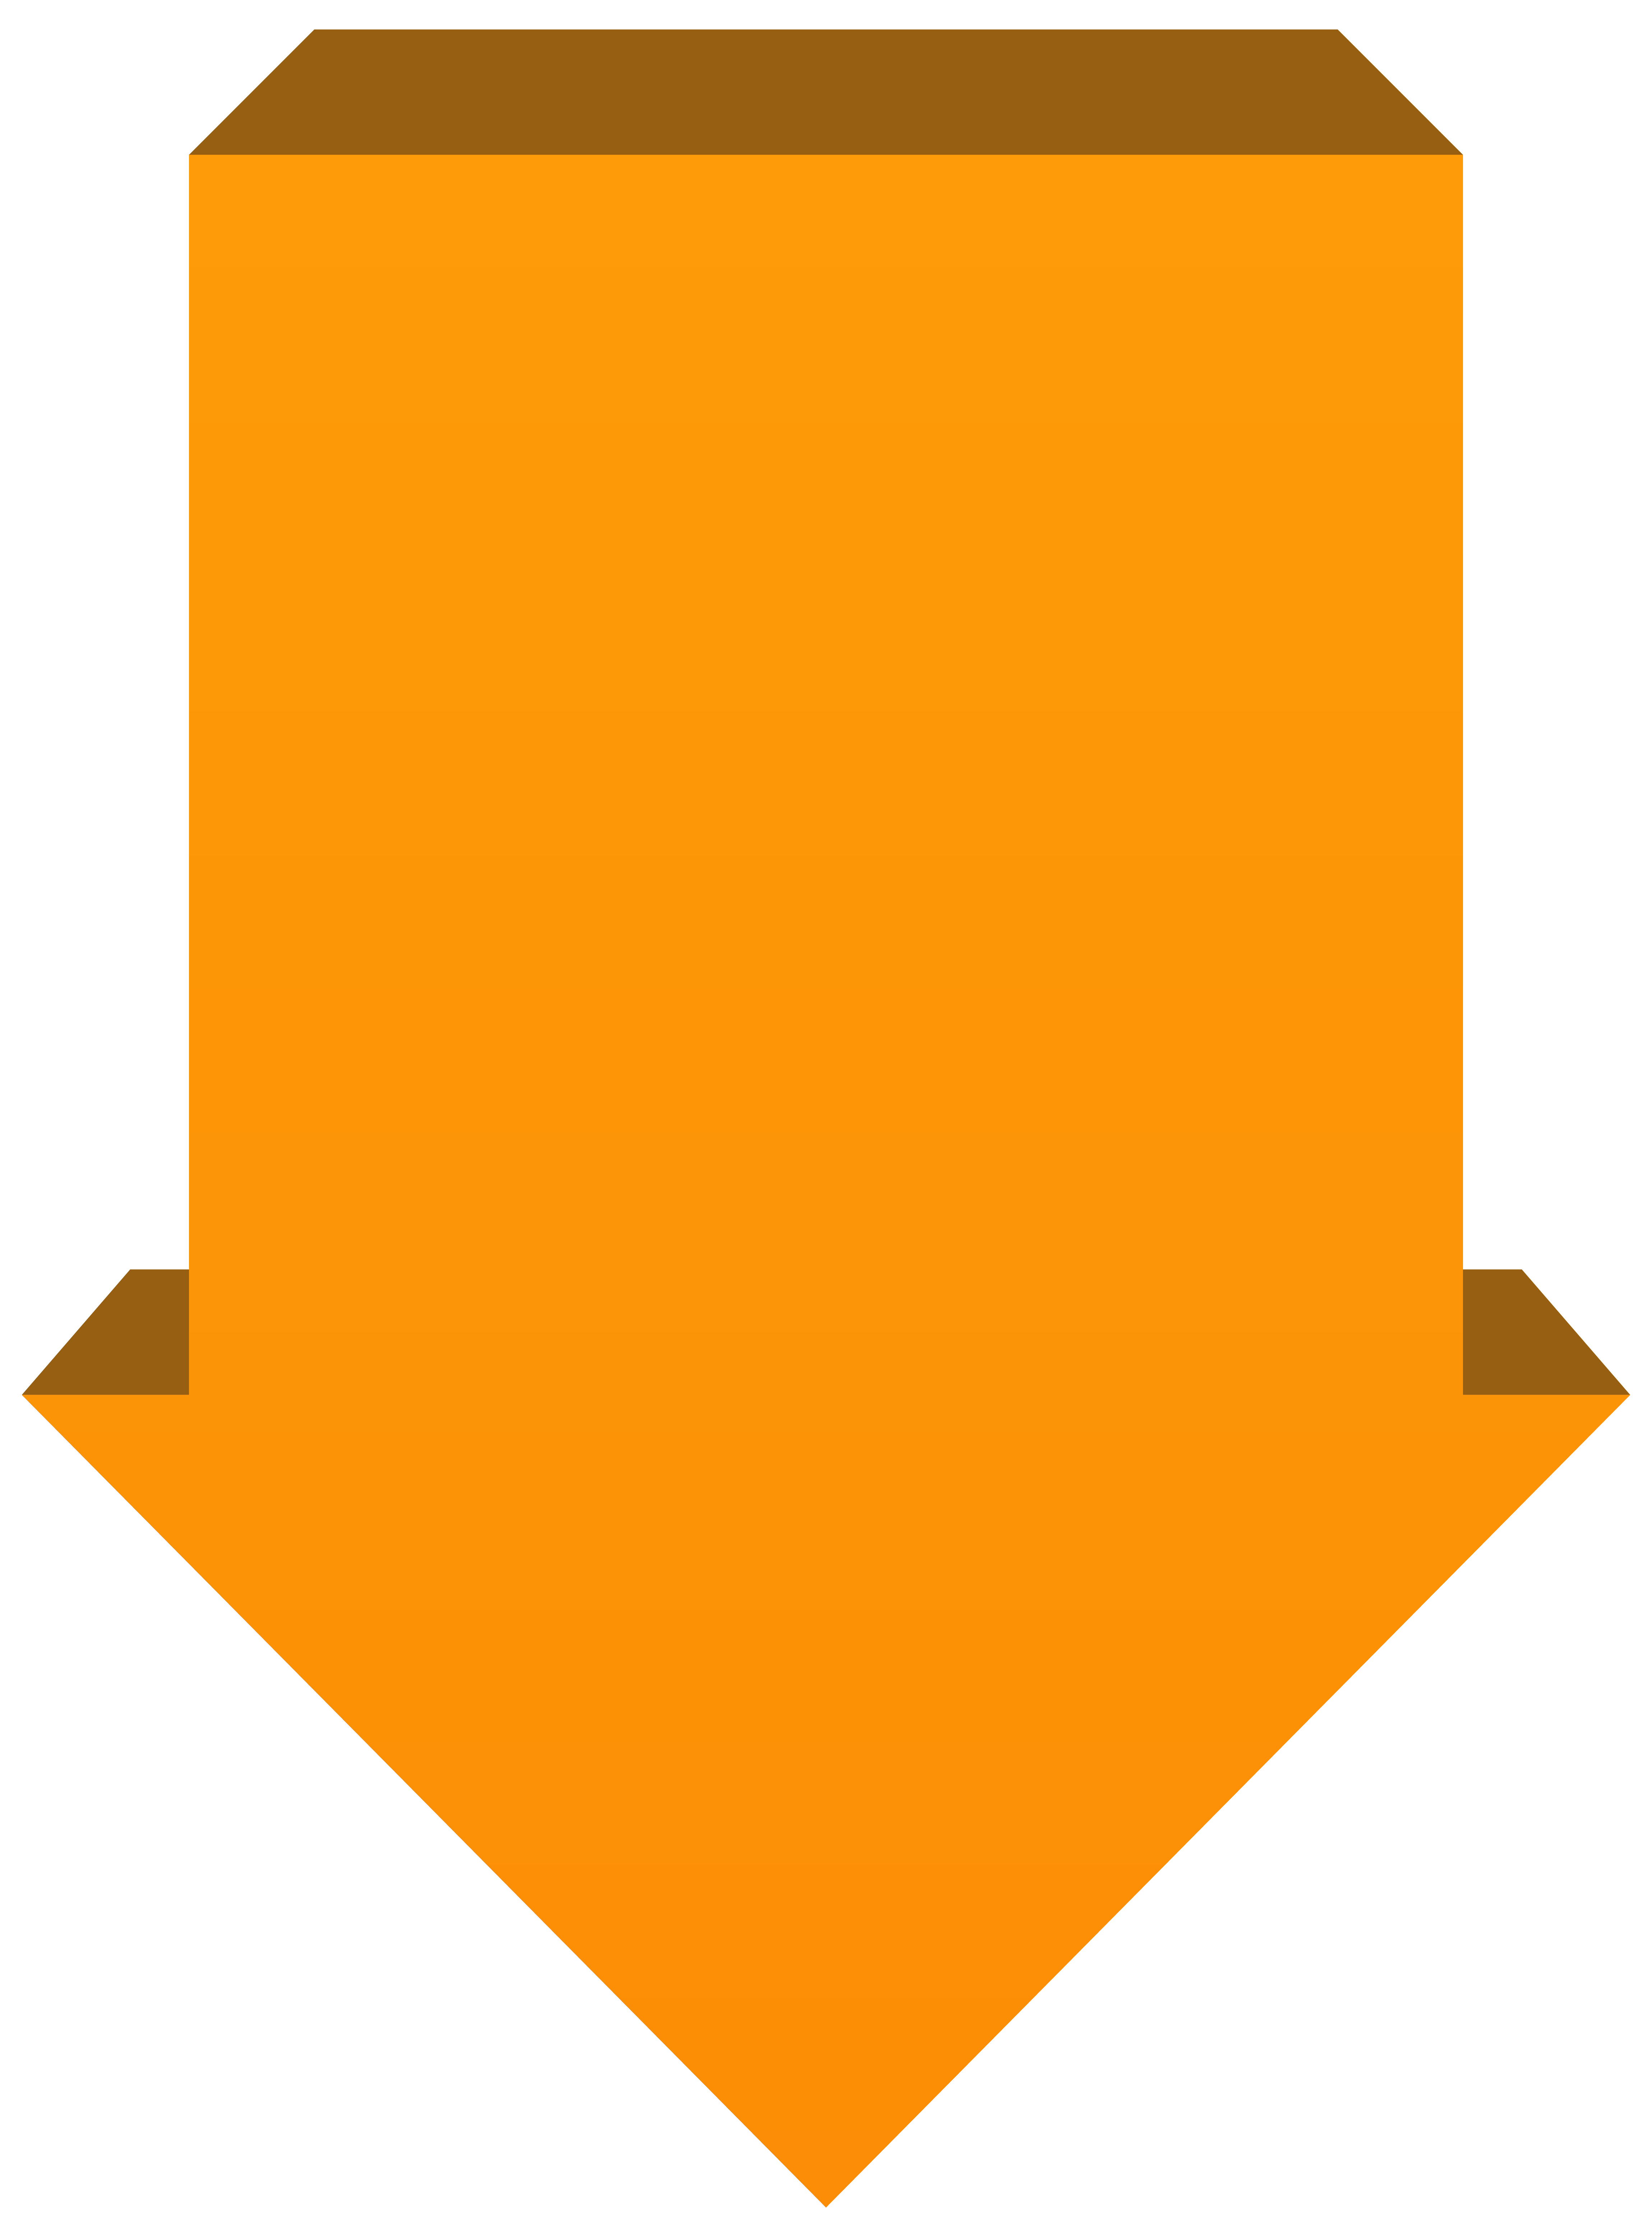 Orange arrow down png. Clipart arrows yellow